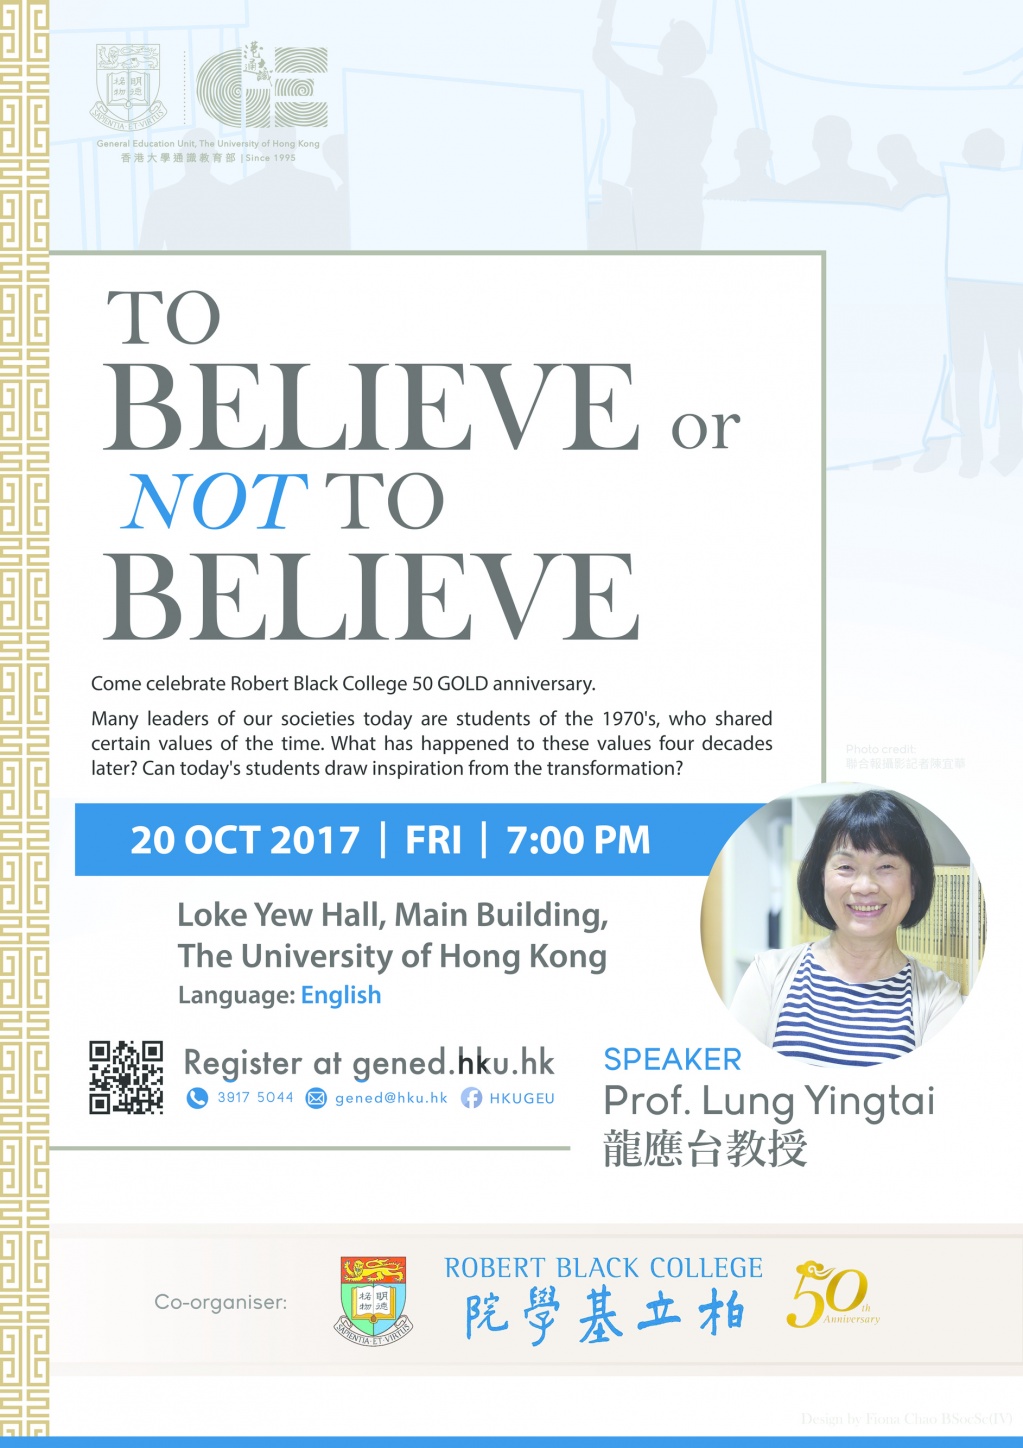 Prof. Lung Yingtai: To Believe or Not to Believe